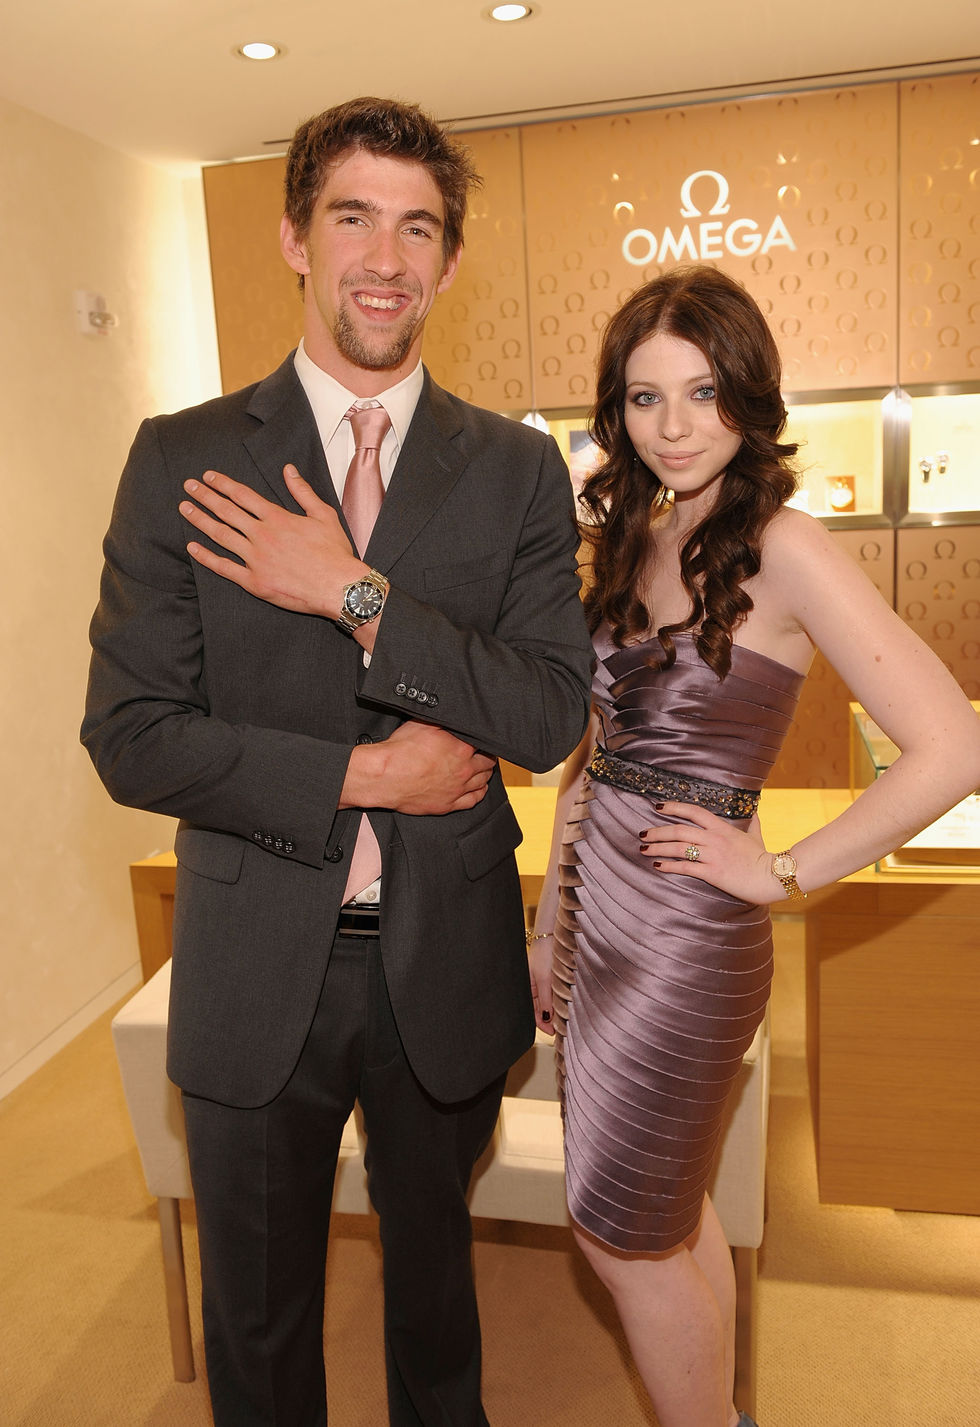 michelle-trachtenberg-omega-flagship-boutique-opening-in-new-york-01